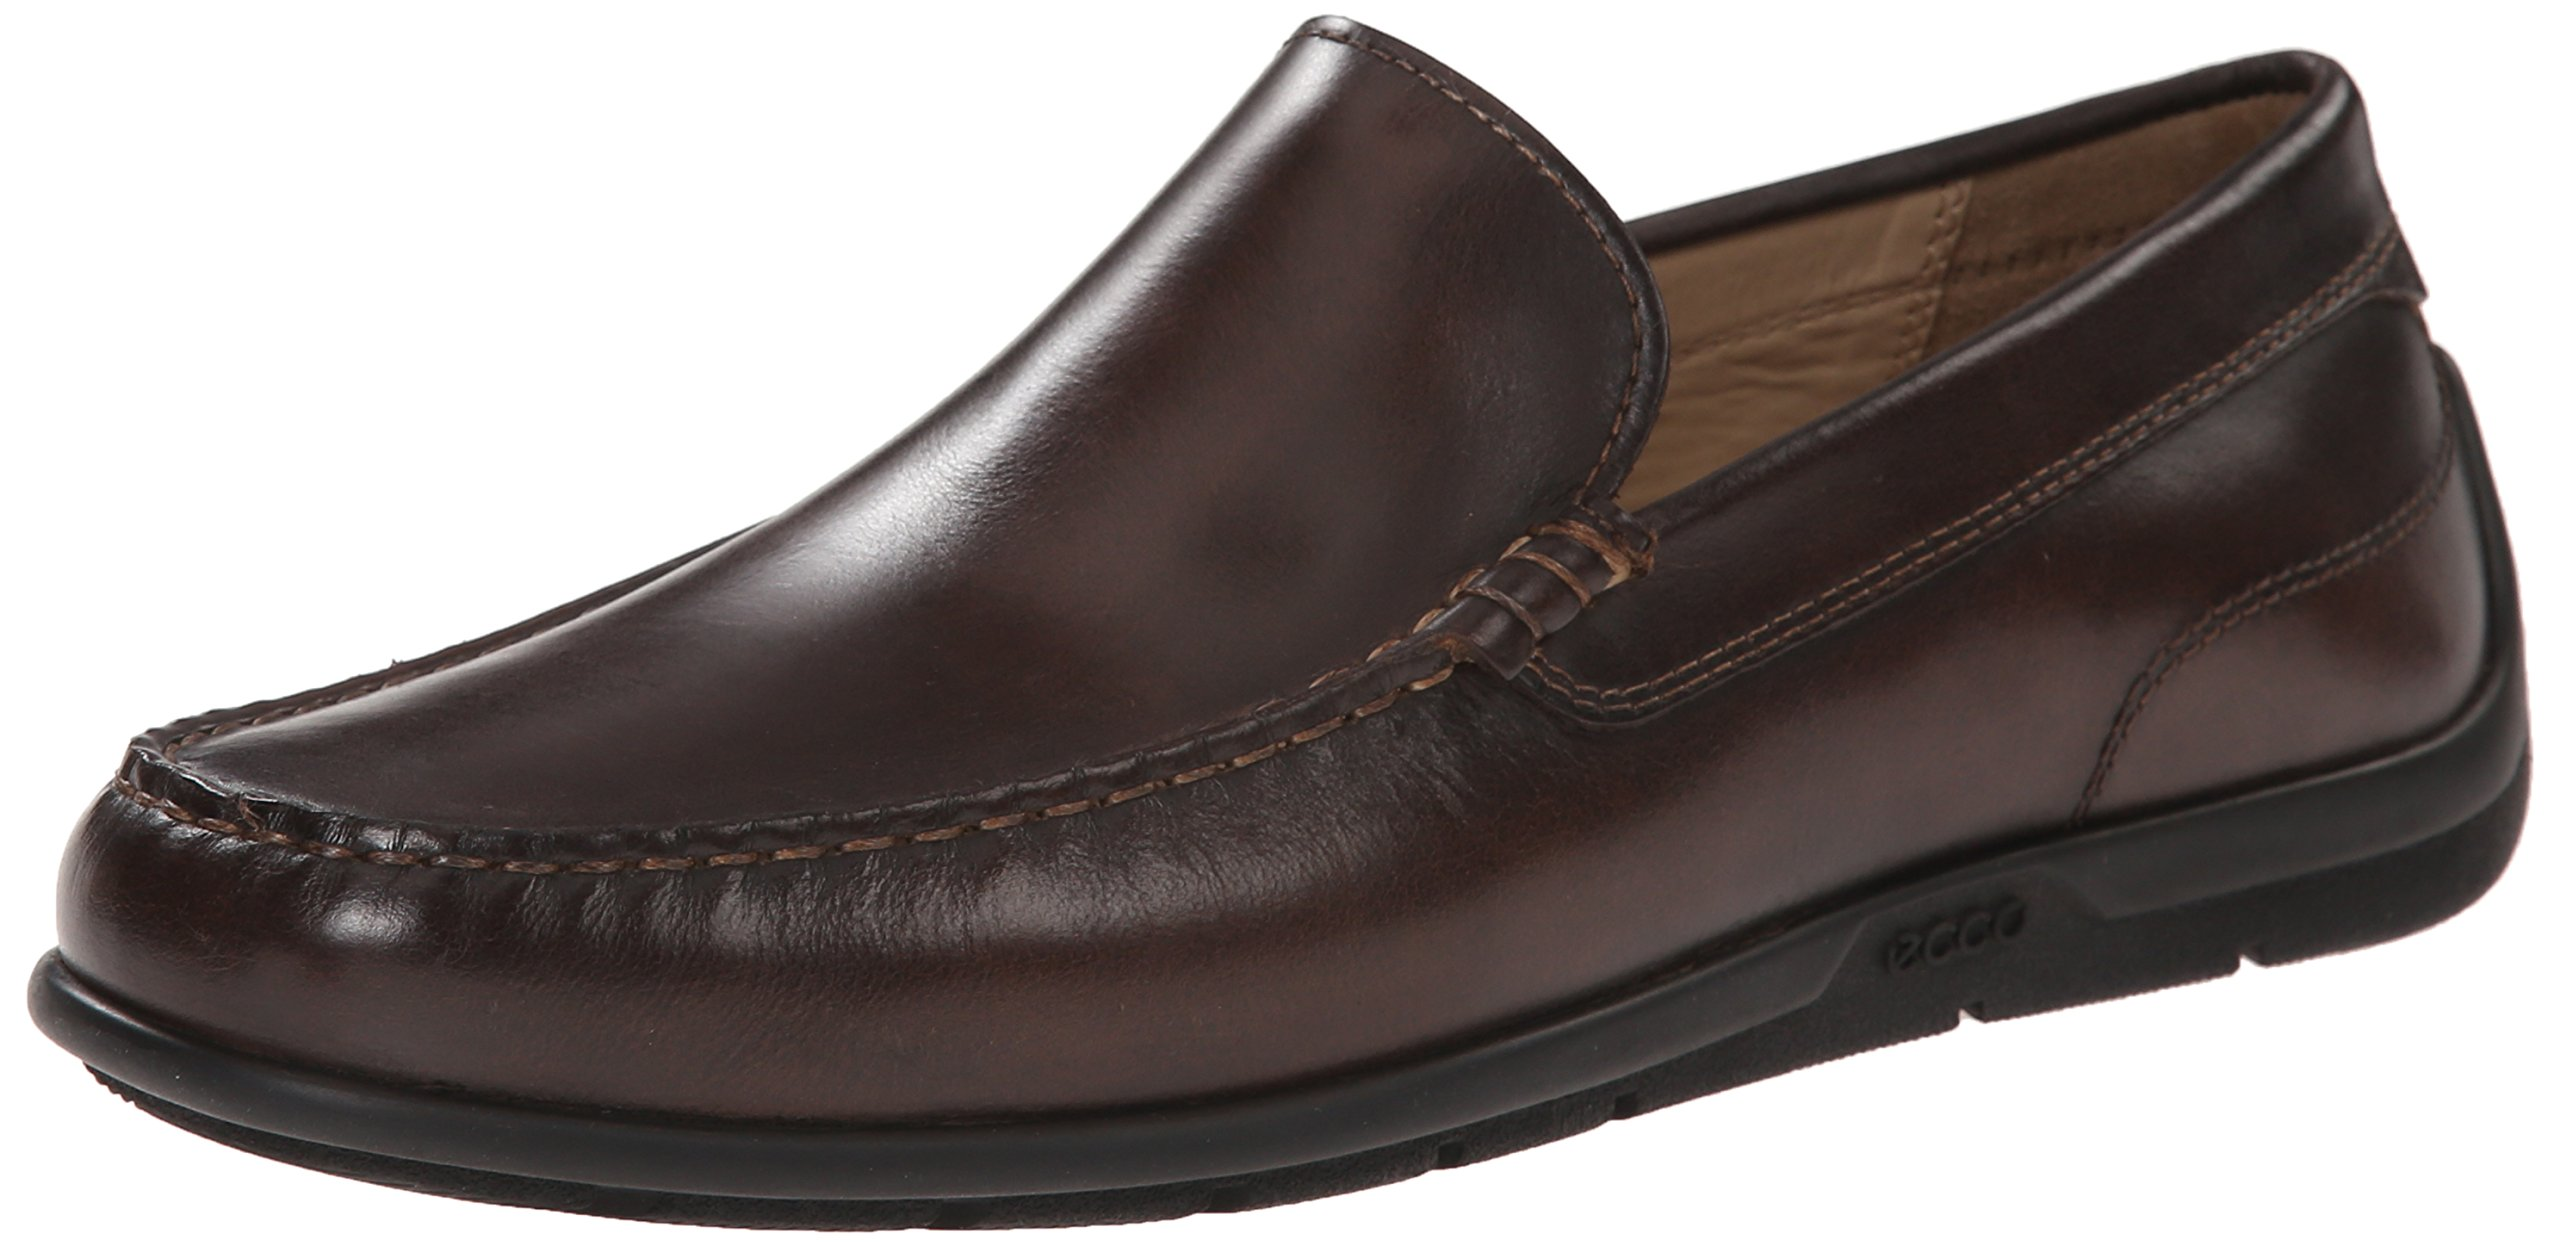 ECCO Men's Classic Moc 2.0 Slip-On Loafer (Coffee, 8-8.5 D(M) US) by Ecco